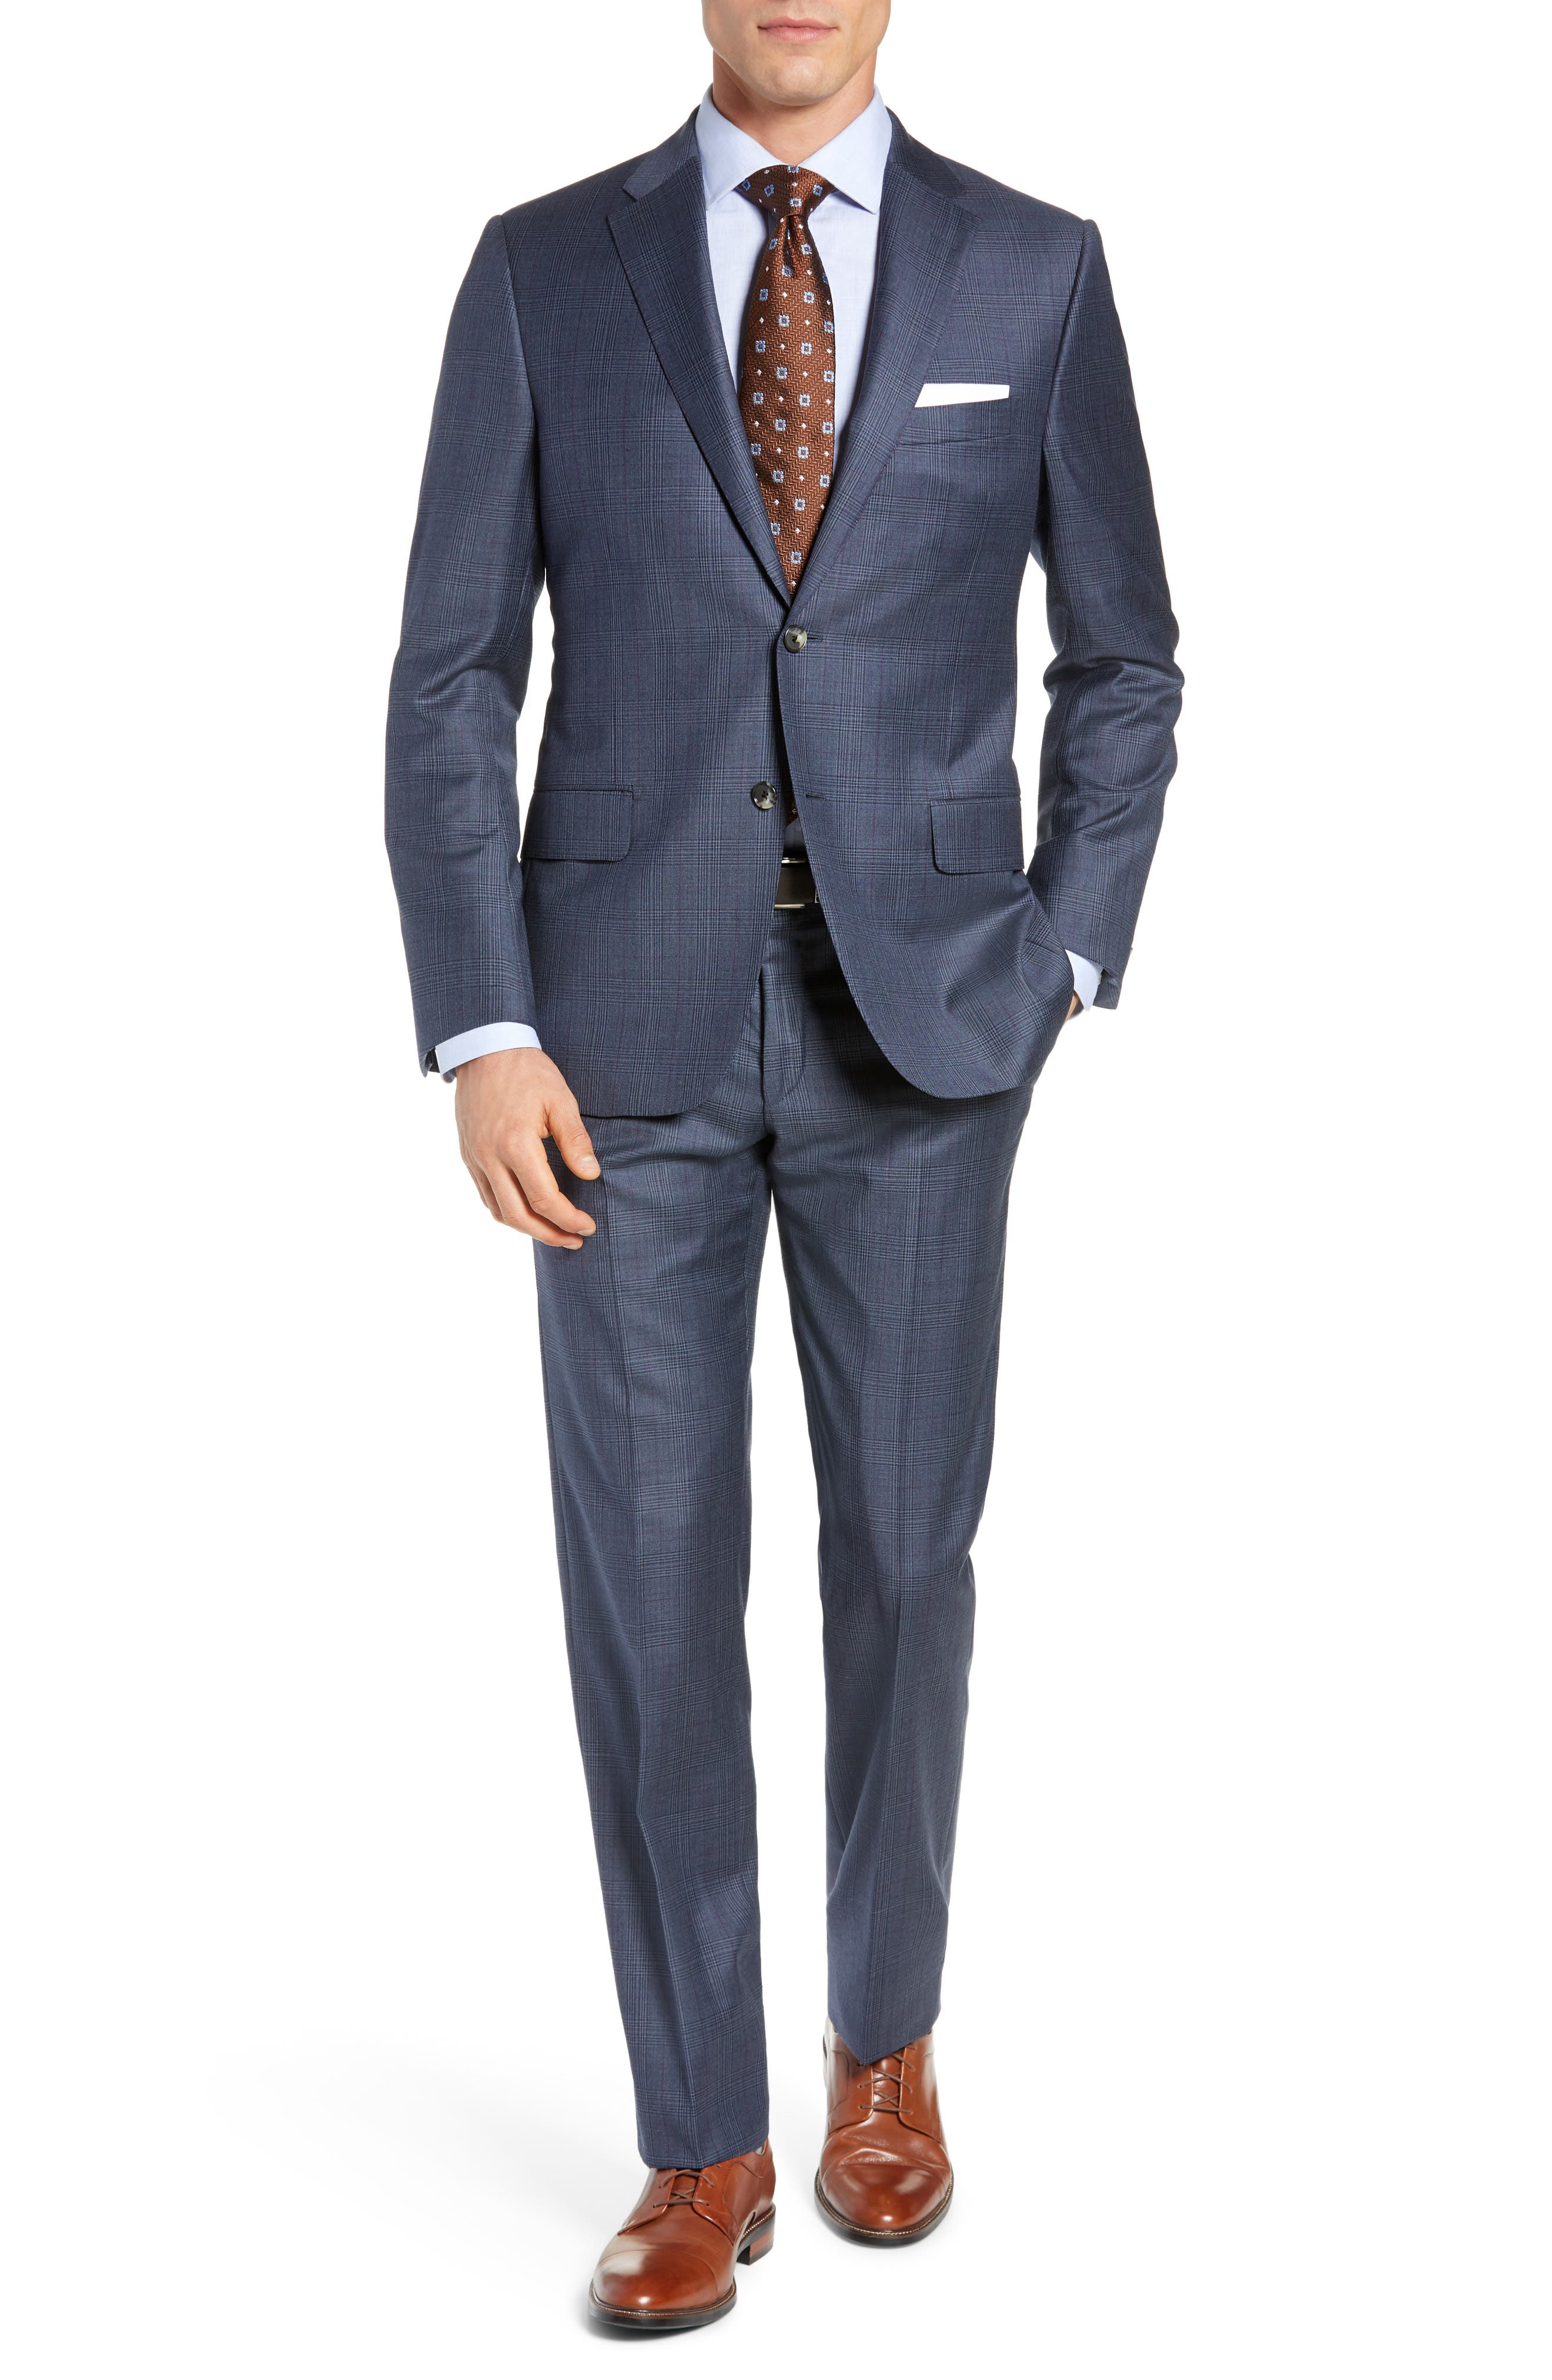 HICKEY FREEMAN Classic Fit Plaid Wool Suit in Grey